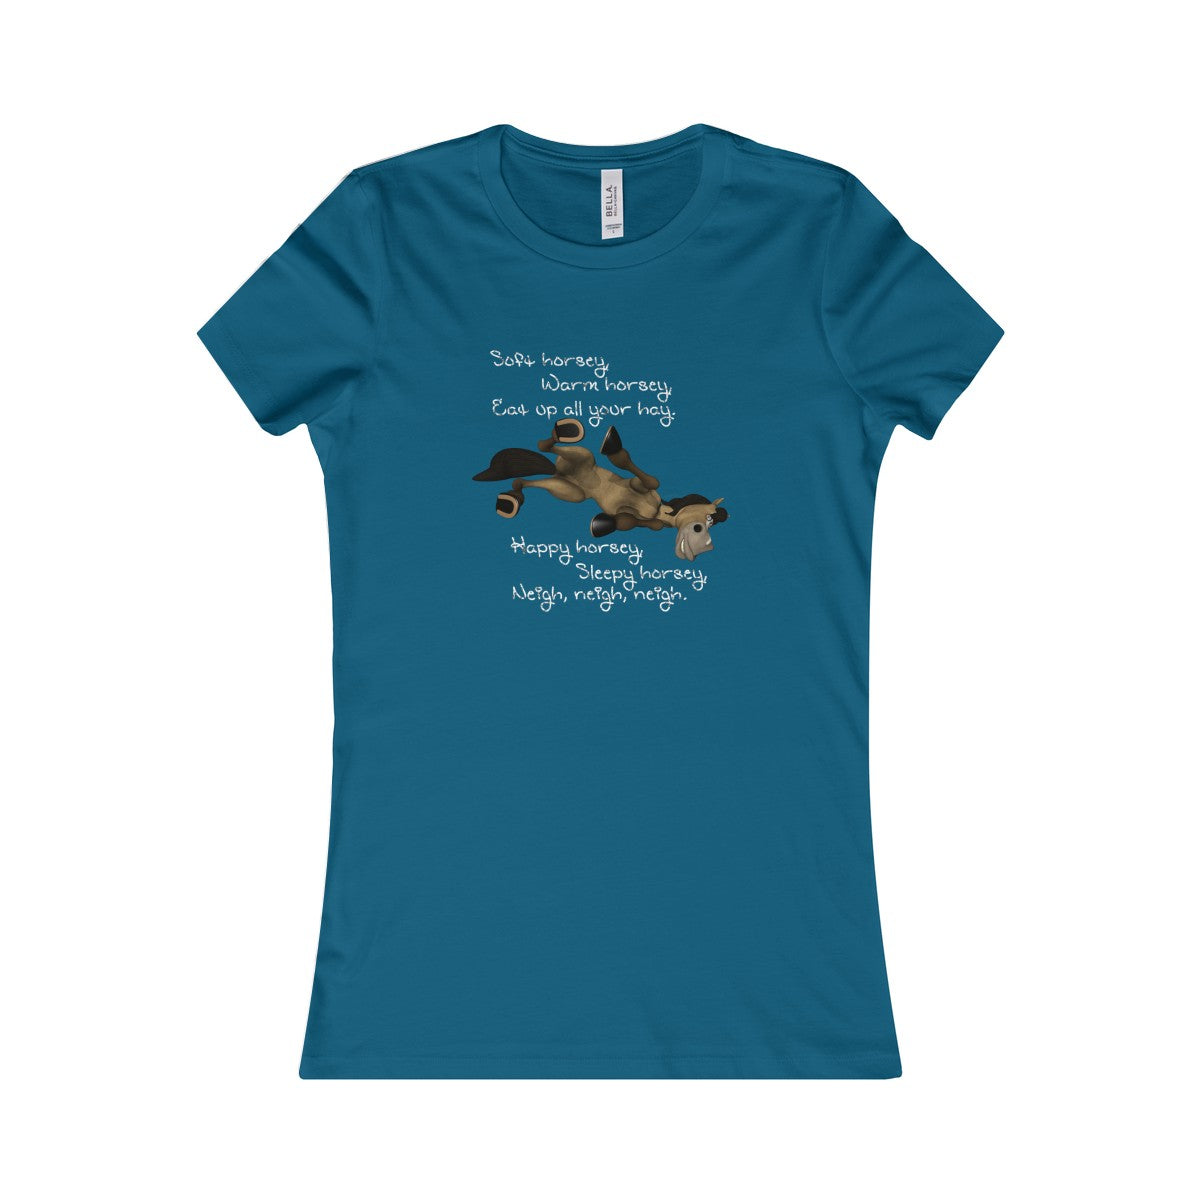 A Warm Horsey Women's Tee - The Horse Barn